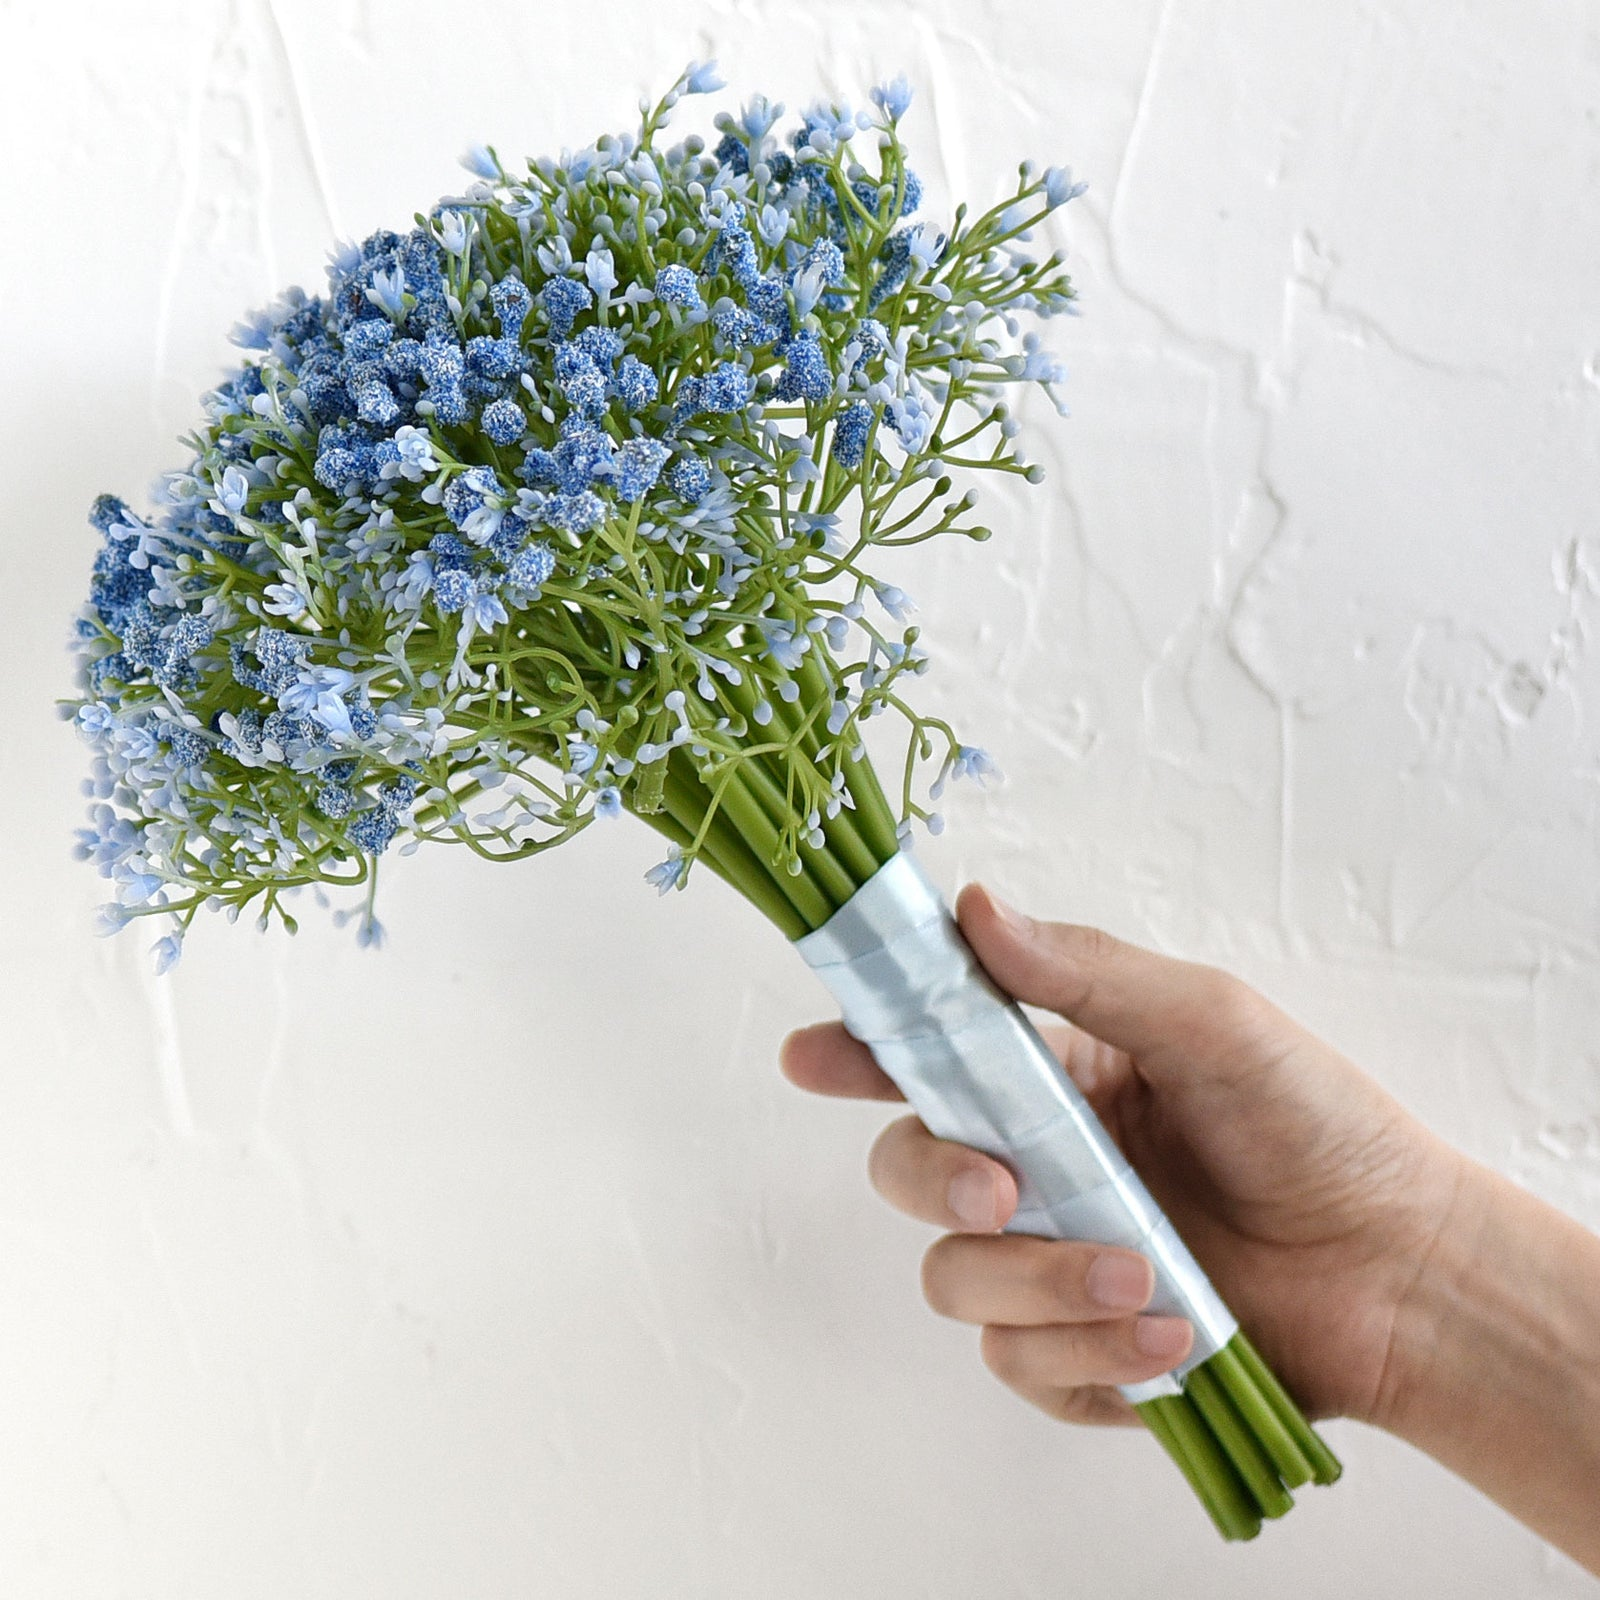 Baby's Breath Artificial Flowers Bouquet 1 Bundle (15 PCS) Baby's Breath Gypsophila 2 for Floral Arrangement, Wedding Flower Bouquet Décor (Blue)